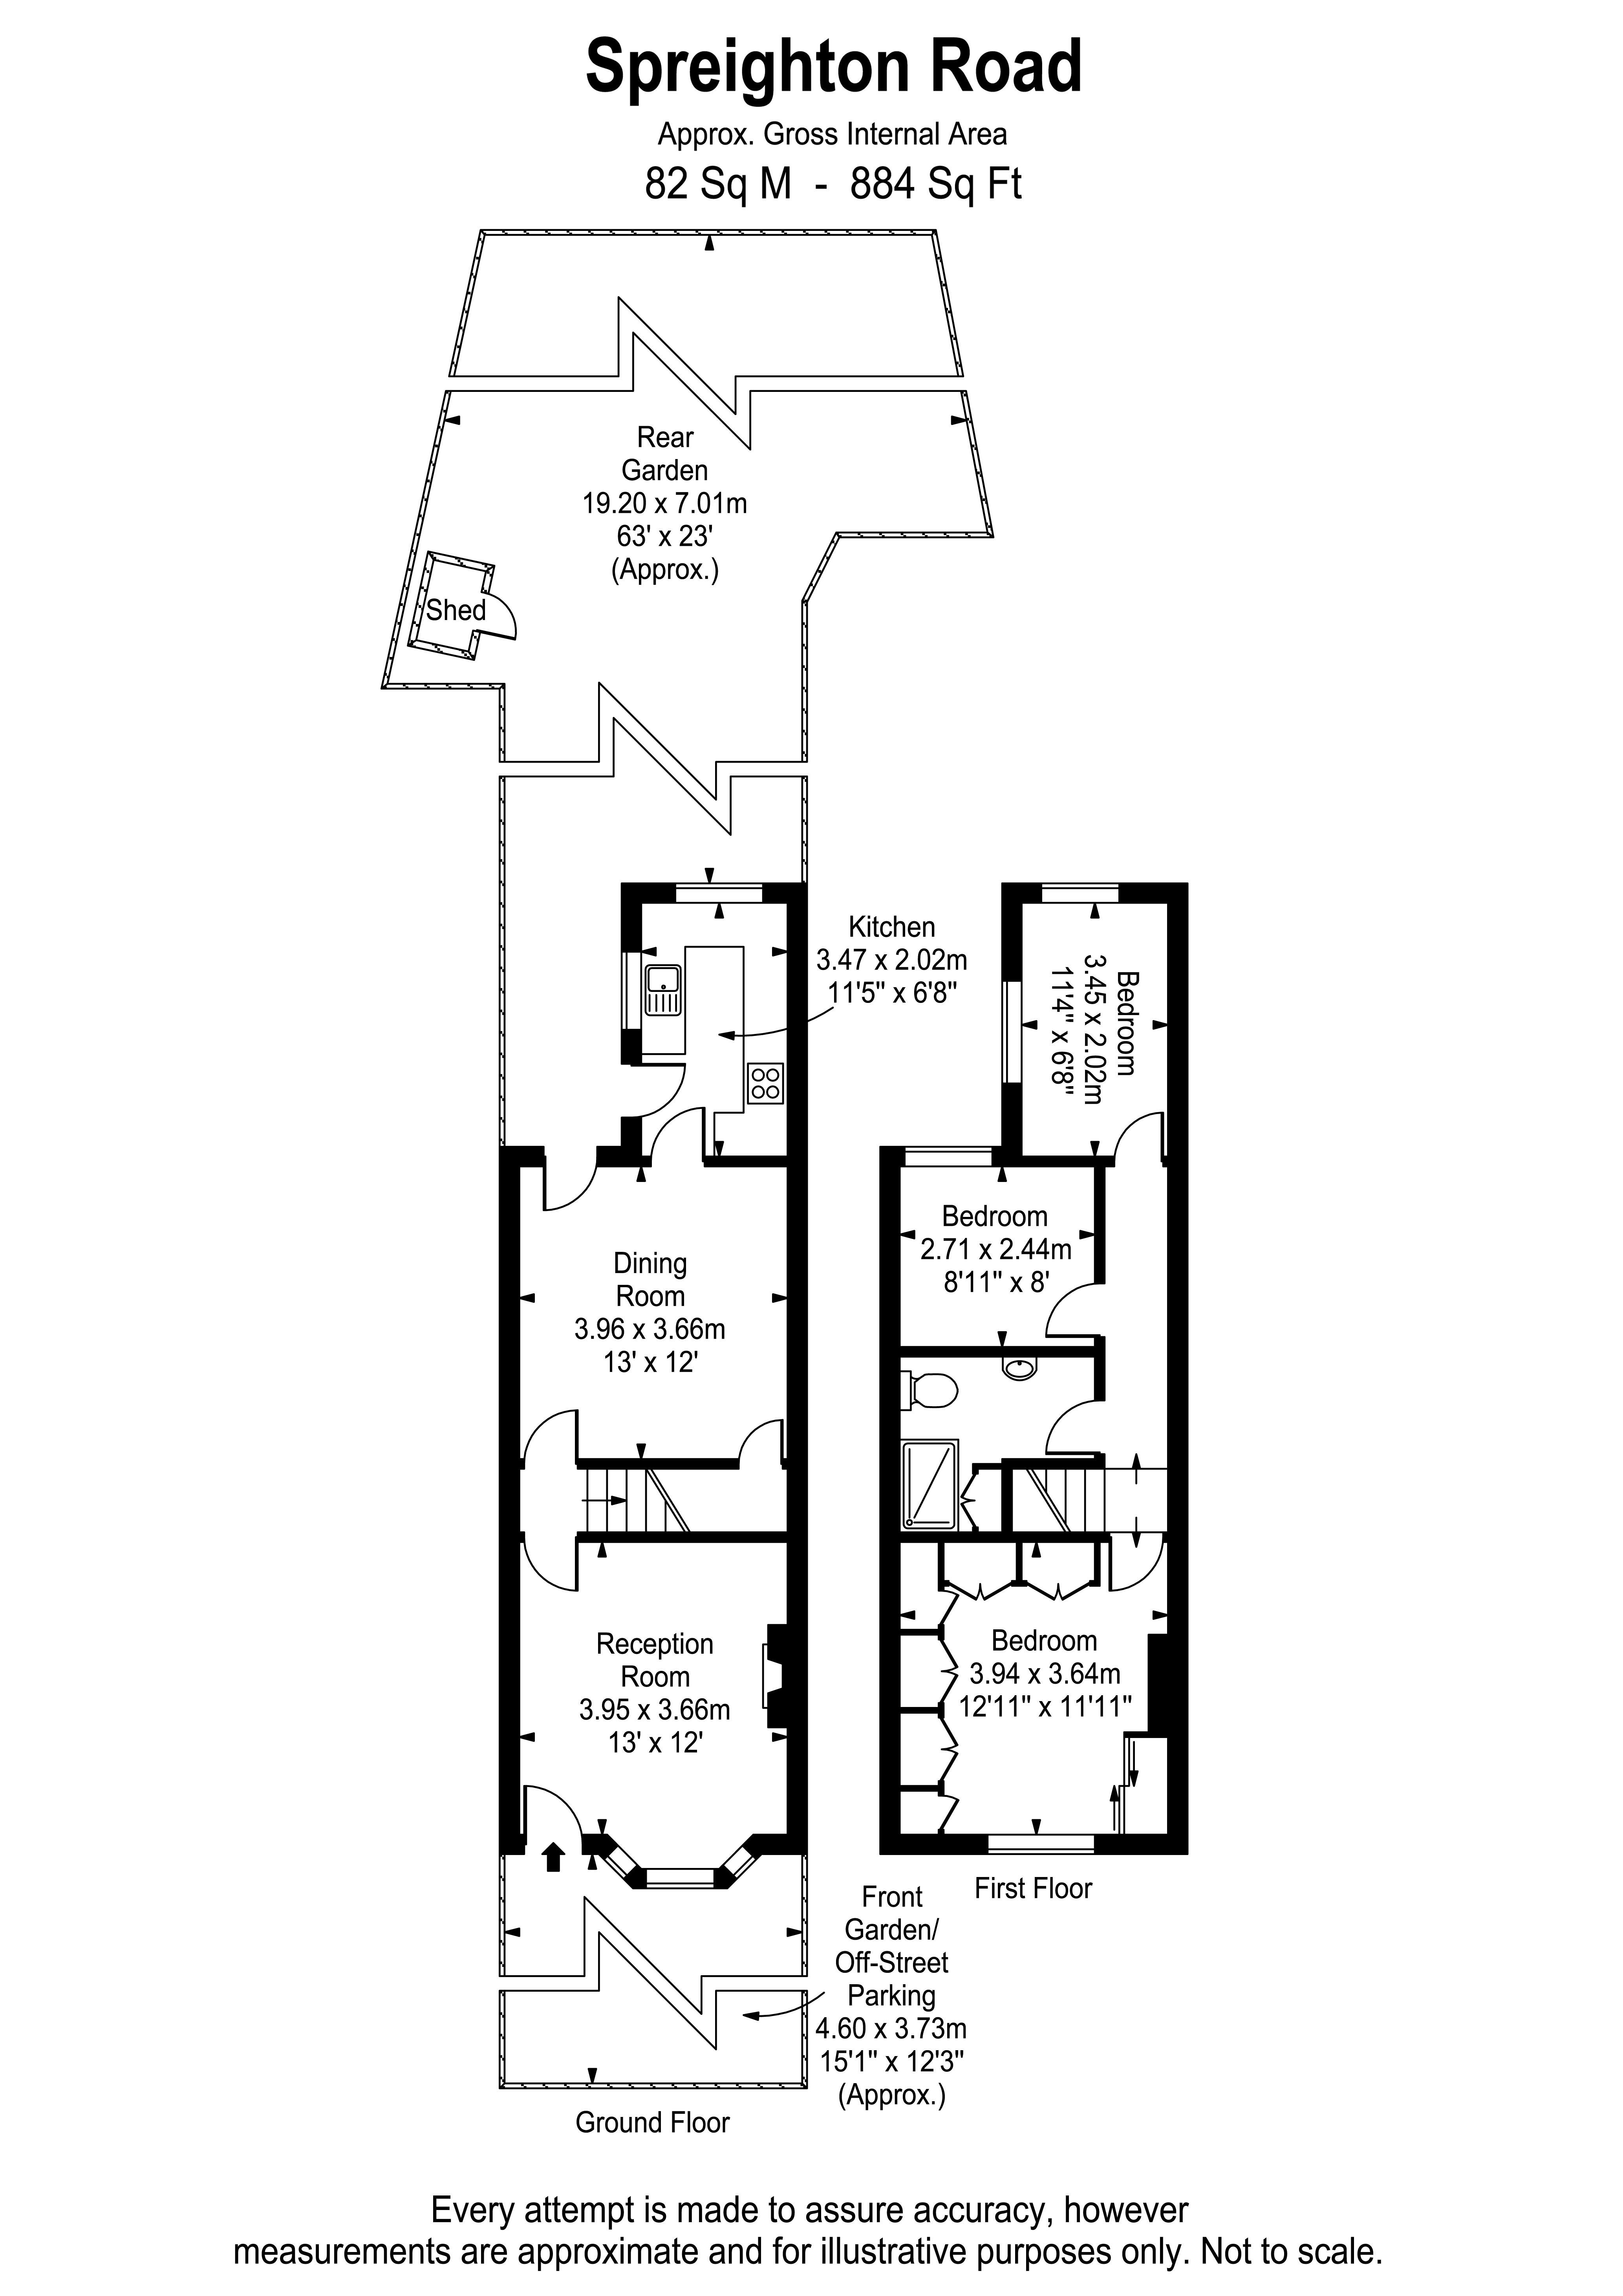 Floorplans For Spreighton Road, West Molesey